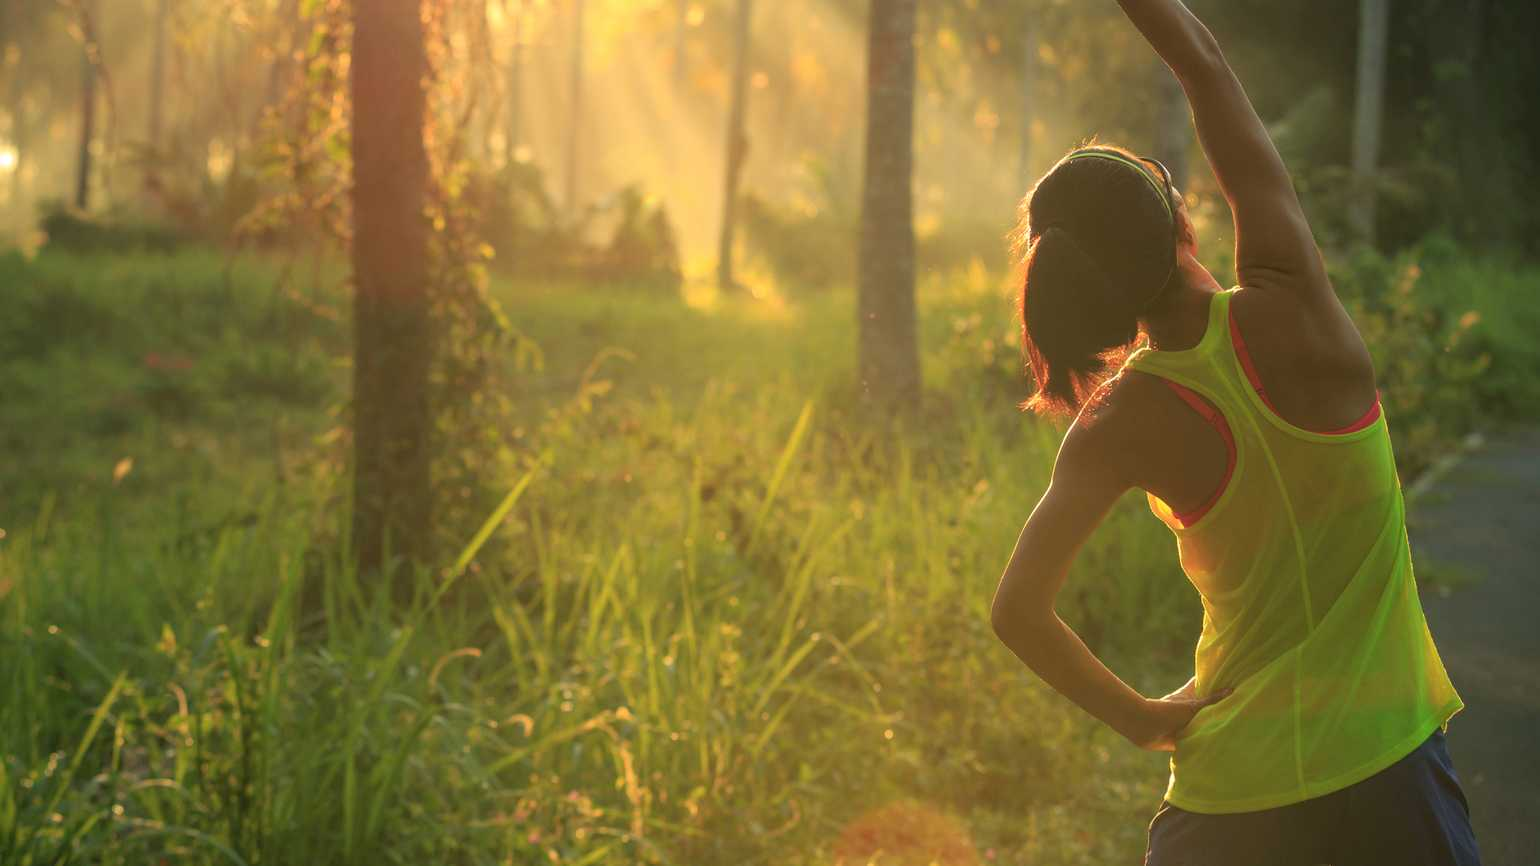 oung female runner warming up before running at morning forest trail